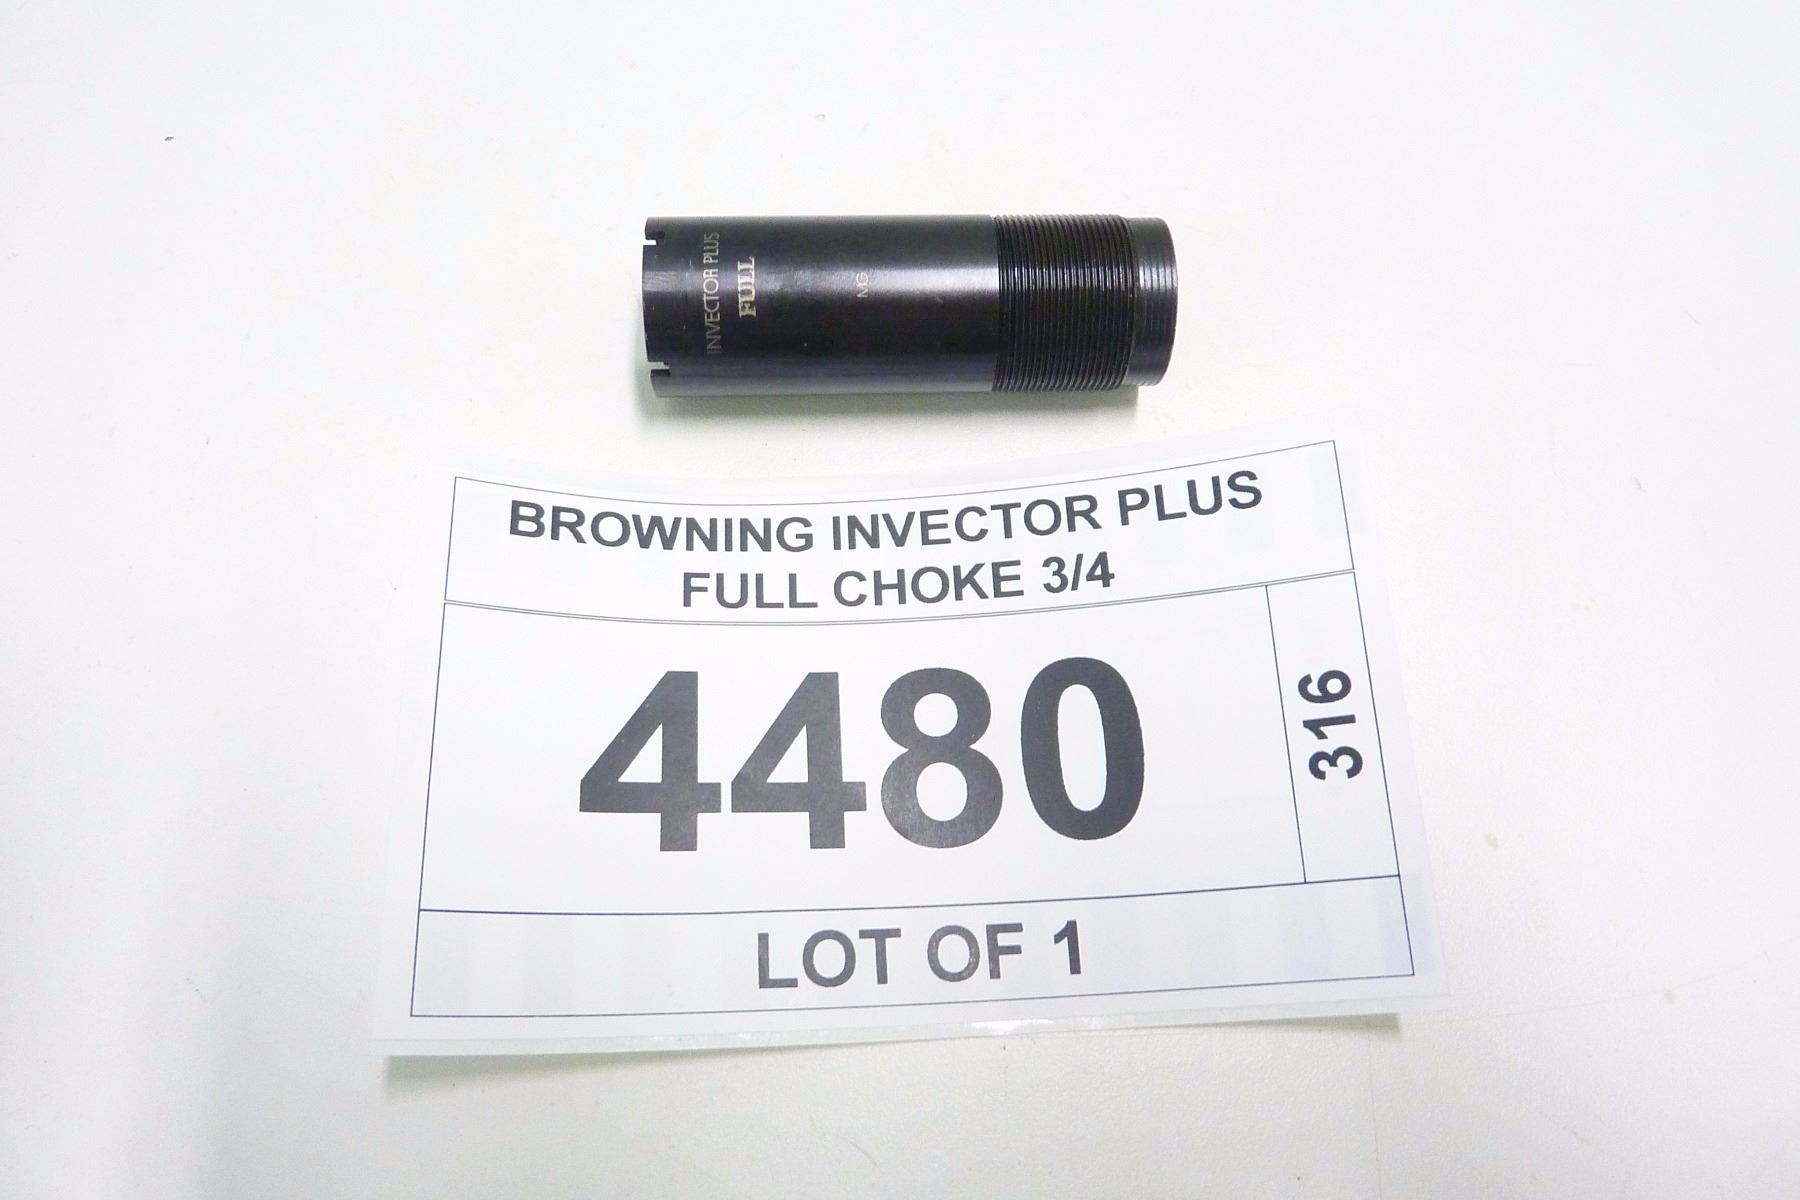 BROWNING INVECTOR PLUS FULL CHOKE 3/4